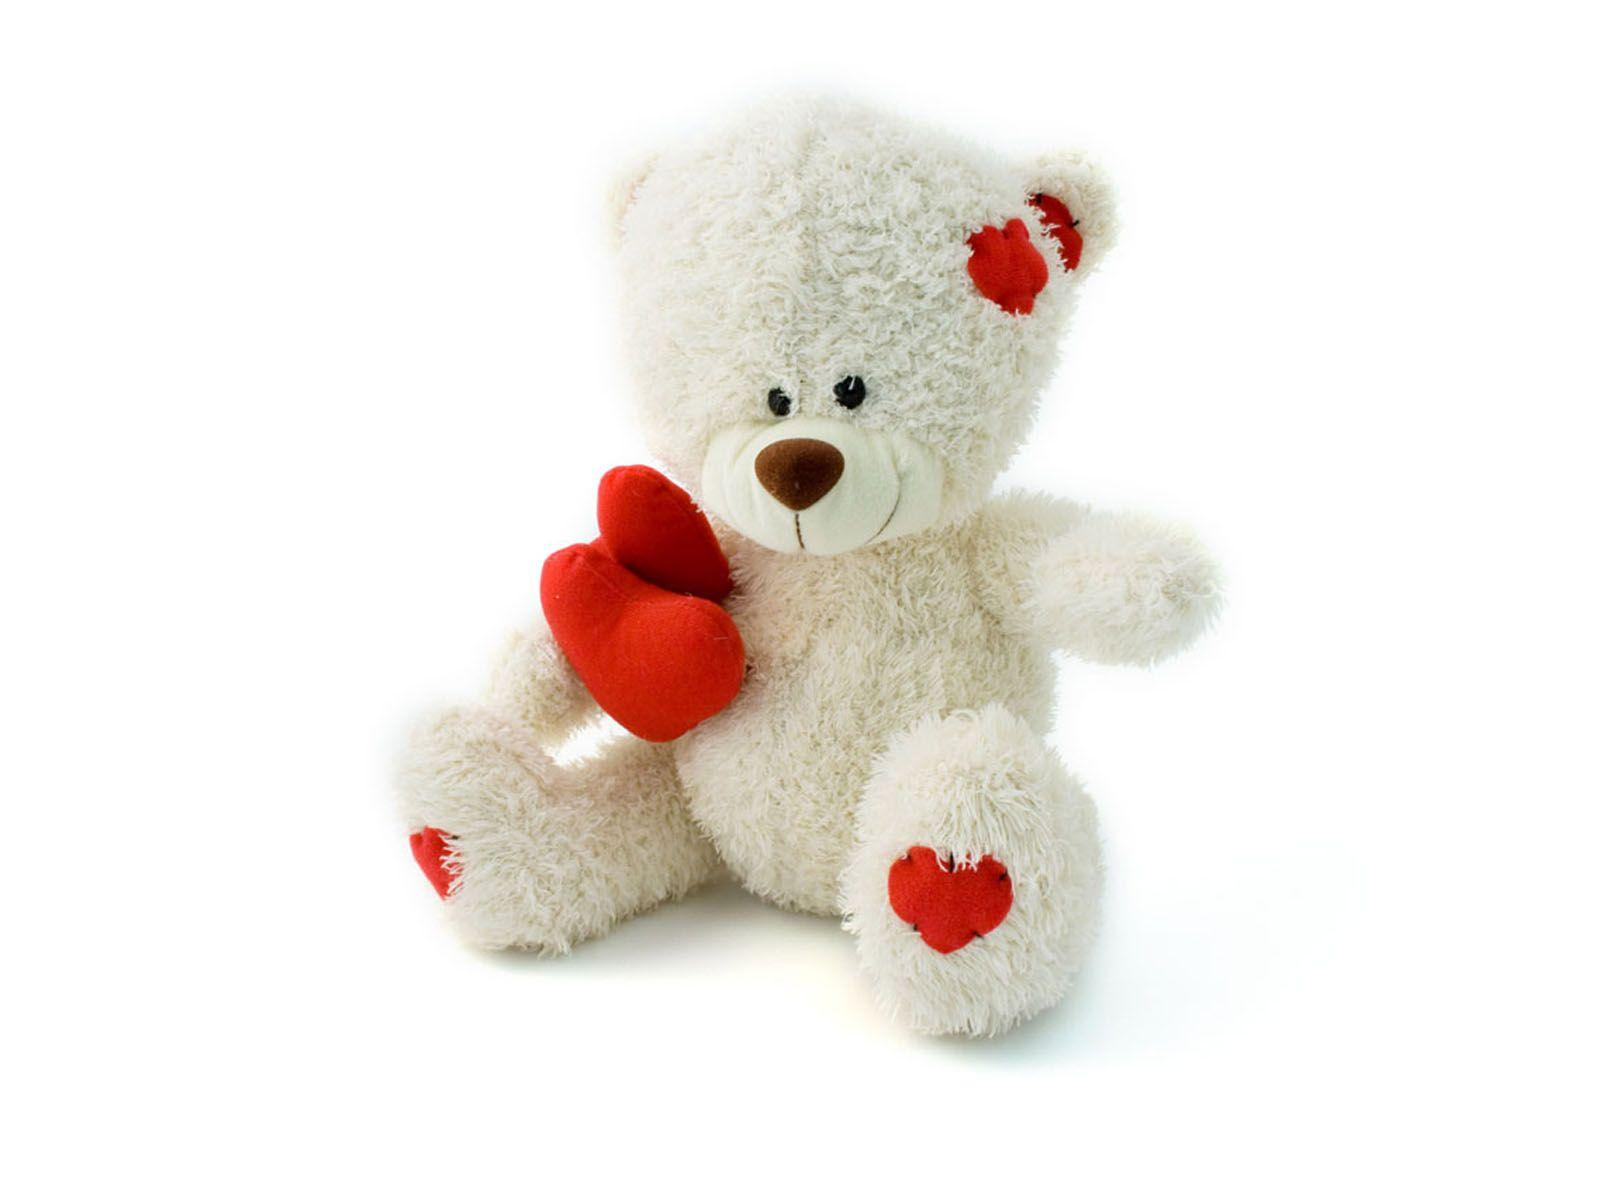 Love Wallpaper With Taddy : Teddy Bear Love Wallpapers - Wallpaper cave